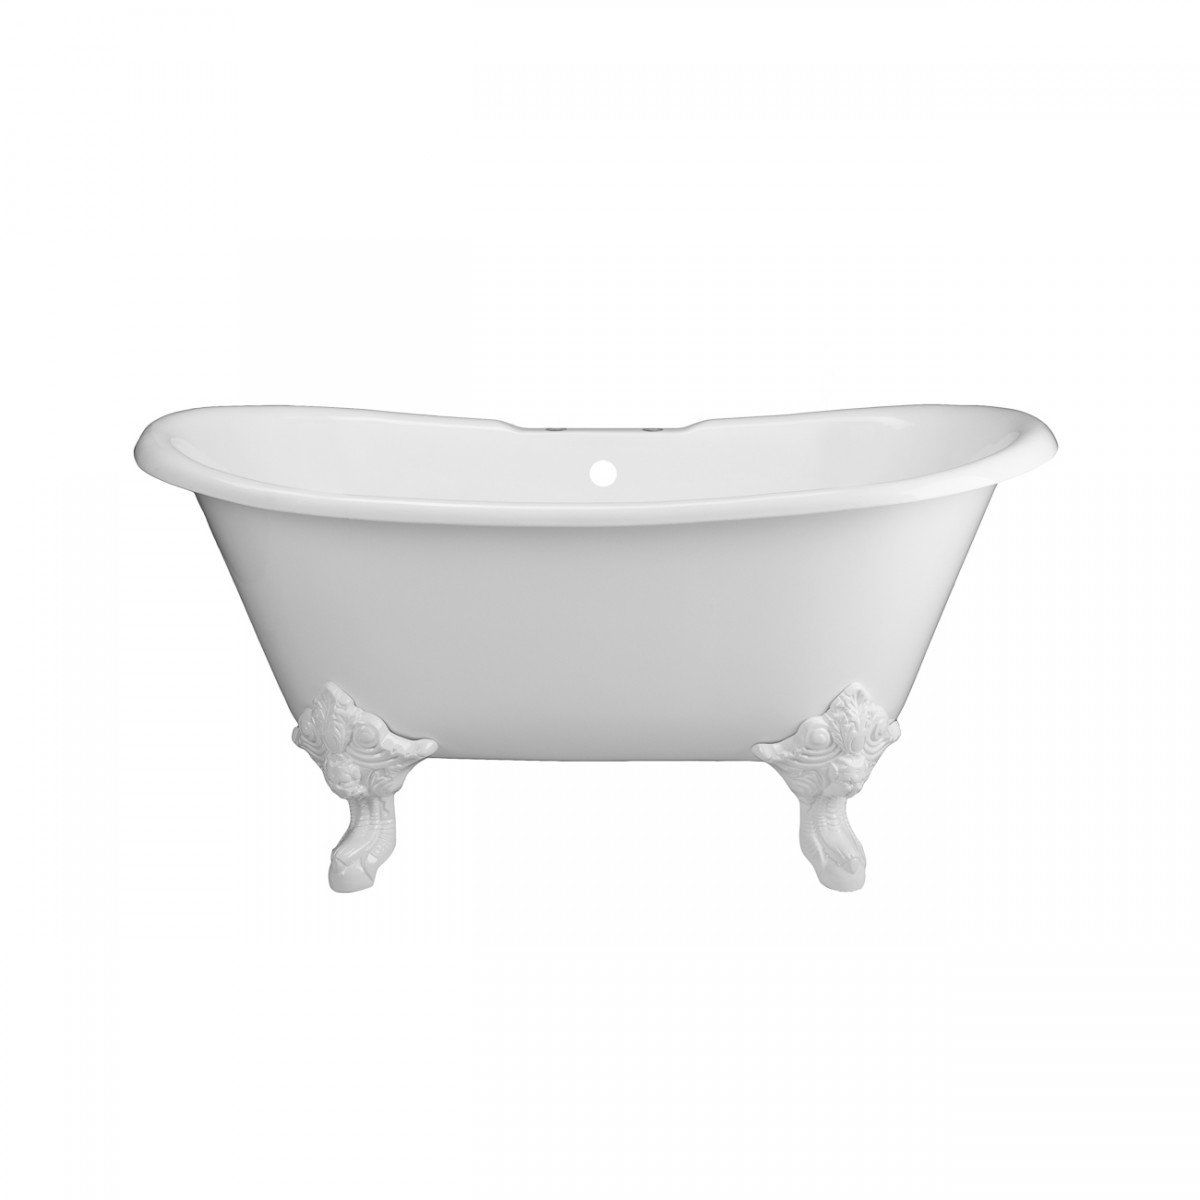 Monarch Cast Iron Double Slipper Clawfoot Tub No Faucet